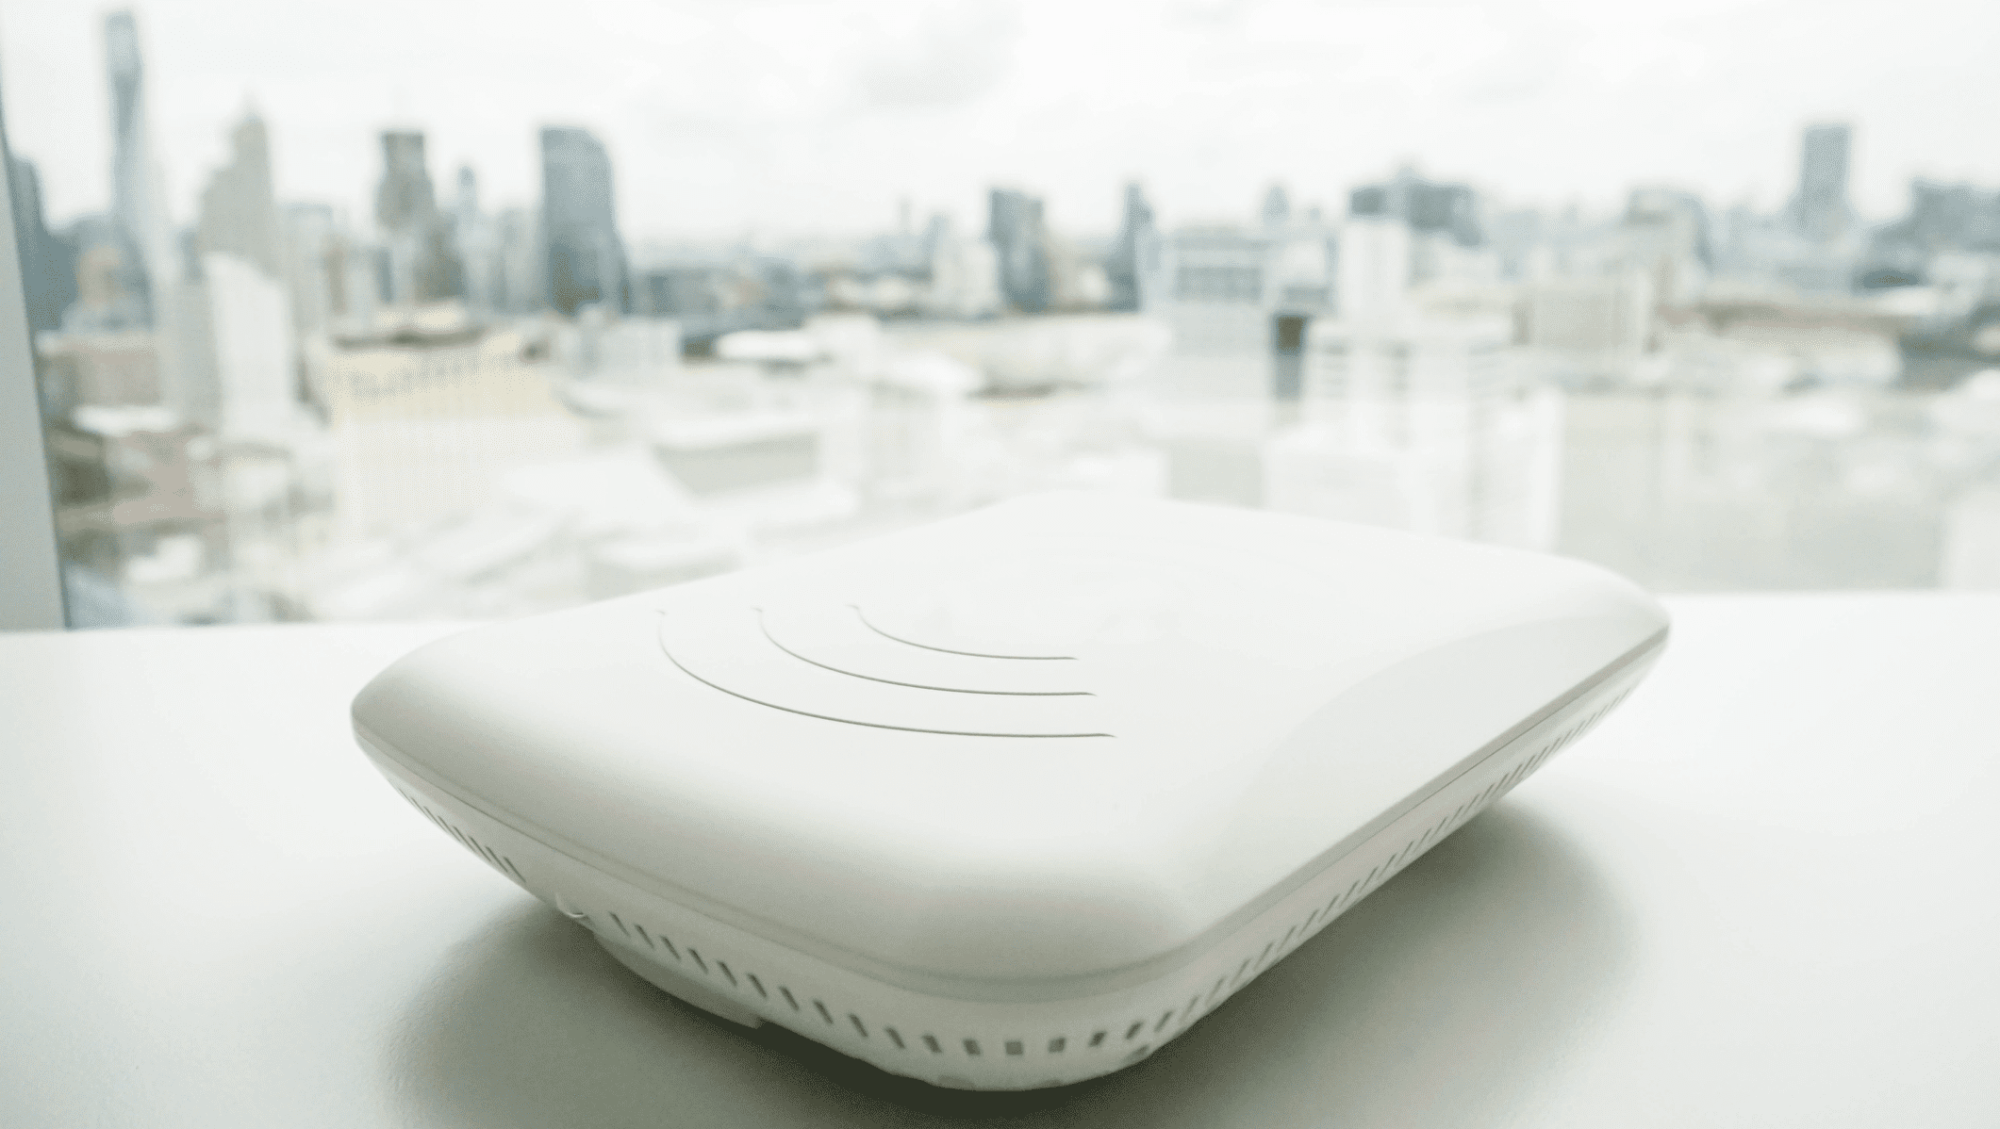 hight resolution of image of a wireless access point